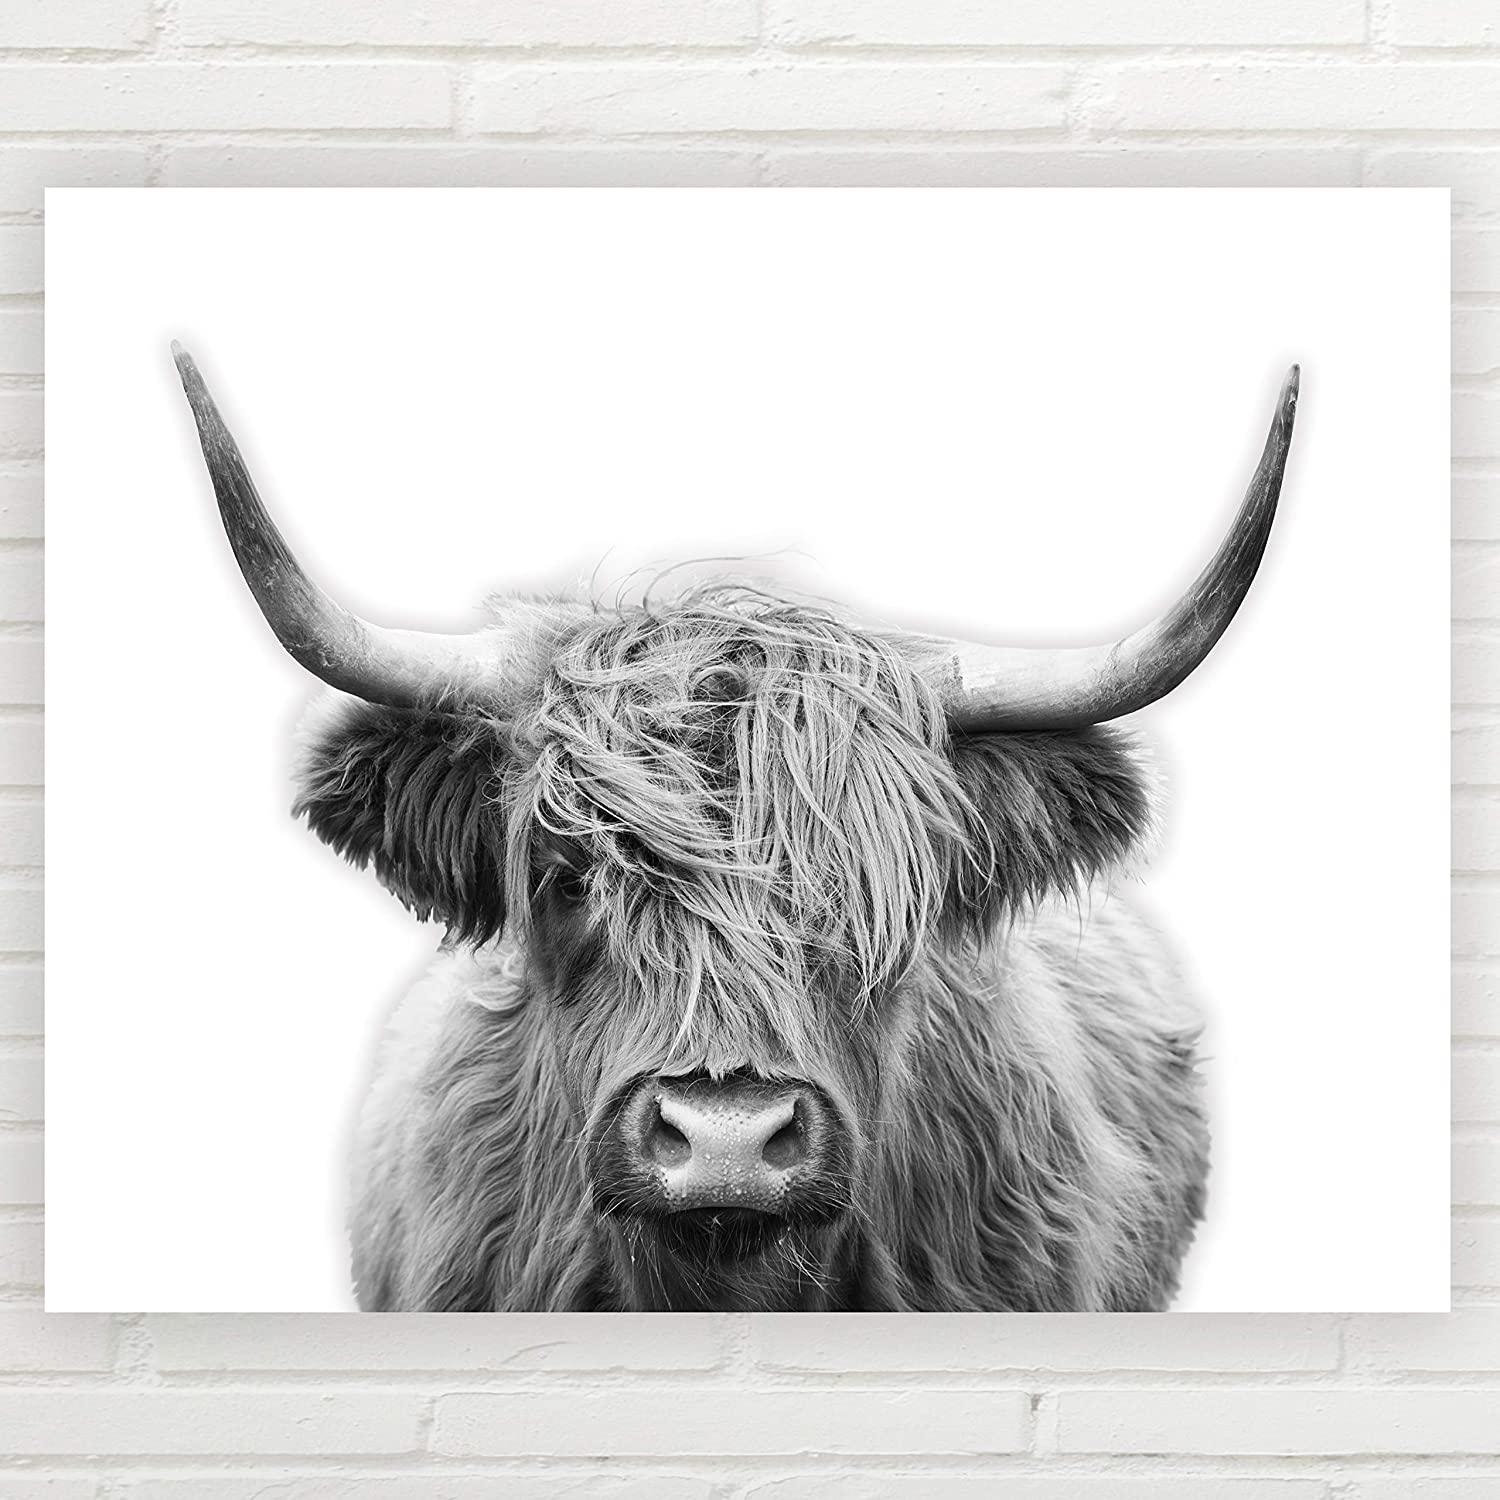 Amazon Com Highland Cow Wall Art Unframed 11x14 Inch Farmhouse Print Fine Art Cow Wall Decor Farmhouse Decor Minimalist Art Cow Wall Art Great Gift Highland Cow Wall Decor Handmade